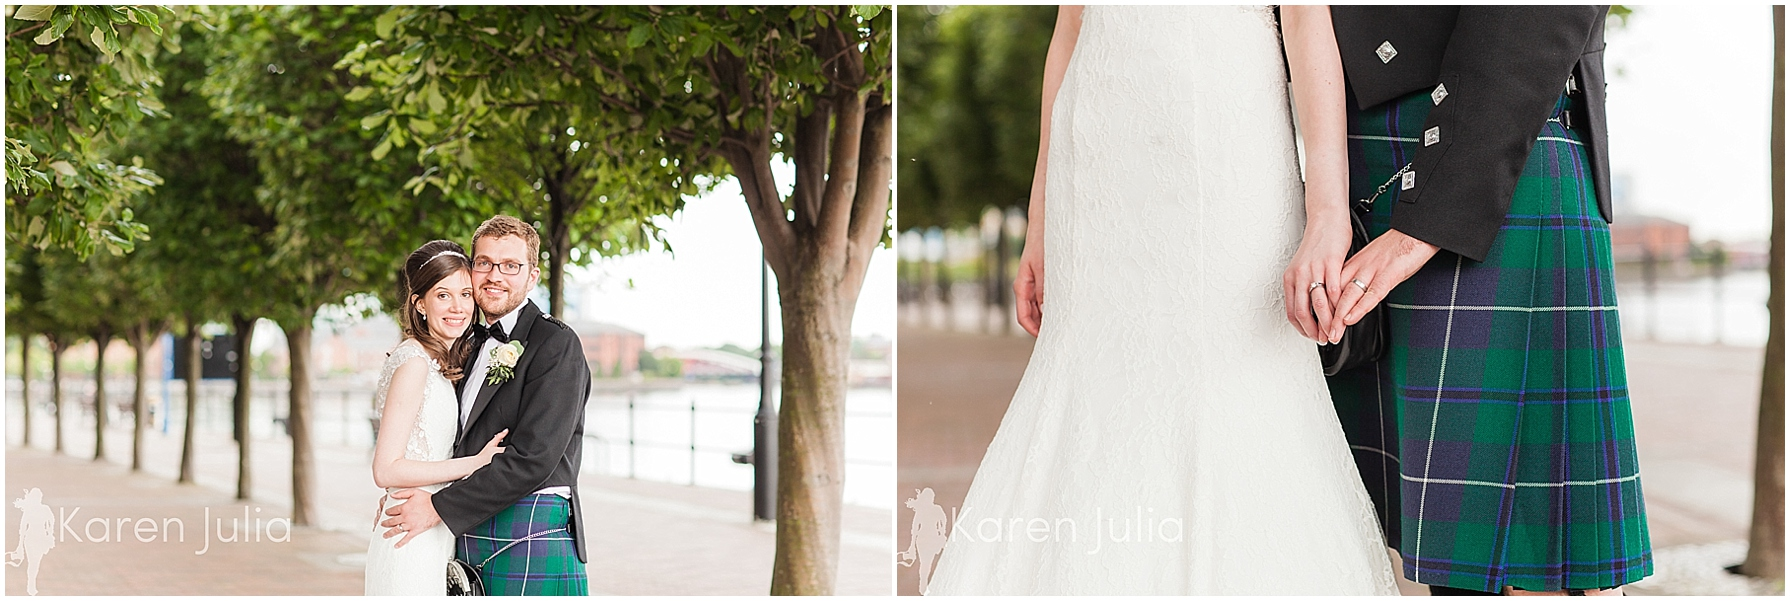 Wedding portrait tree lined walkway salford quays